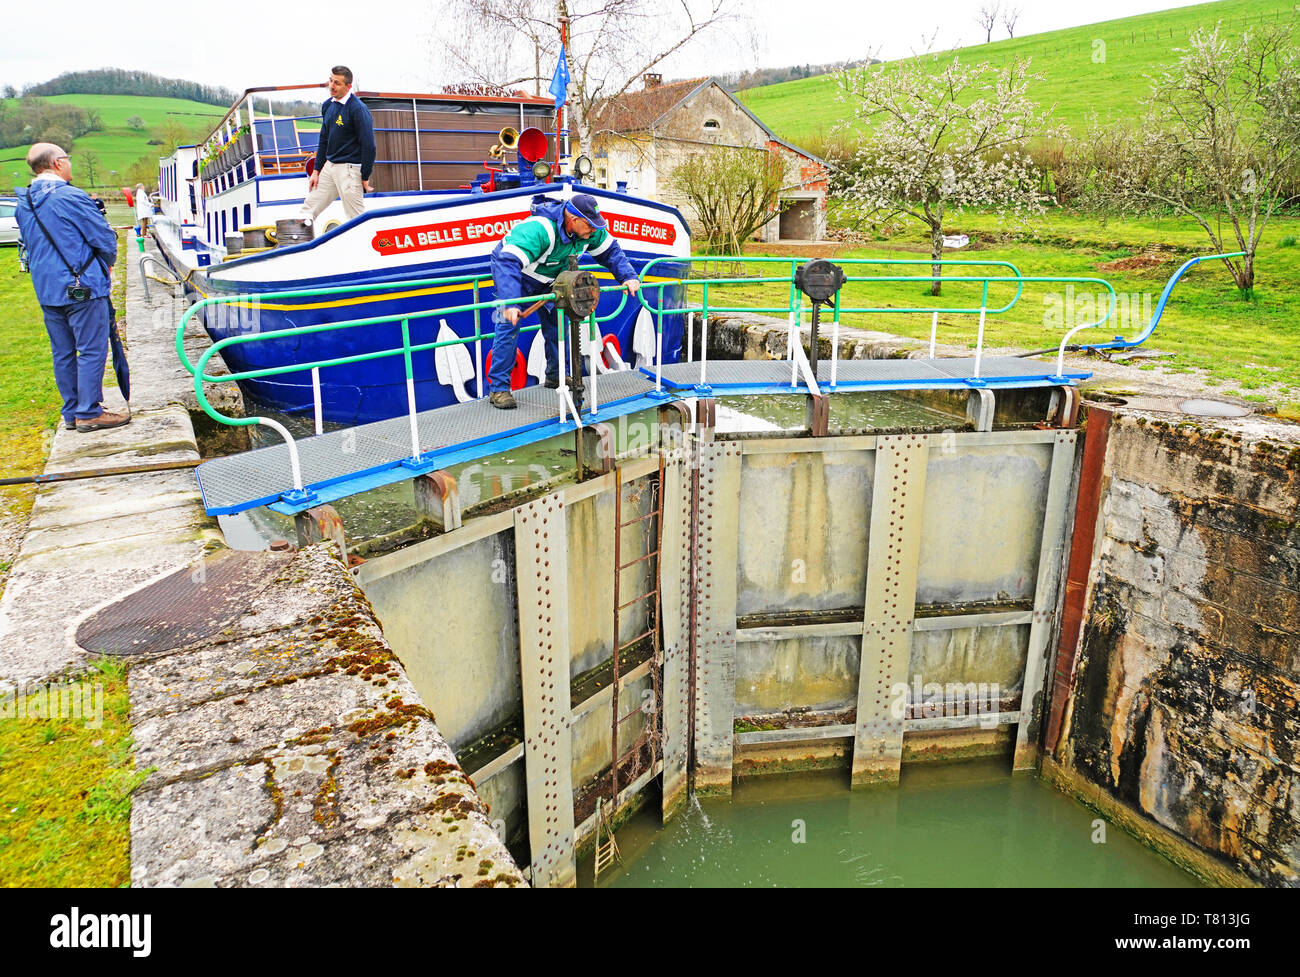 Lock keeper maually opening lock on Burgundy Canal for canal barge La Belle Epoque. - Stock Image